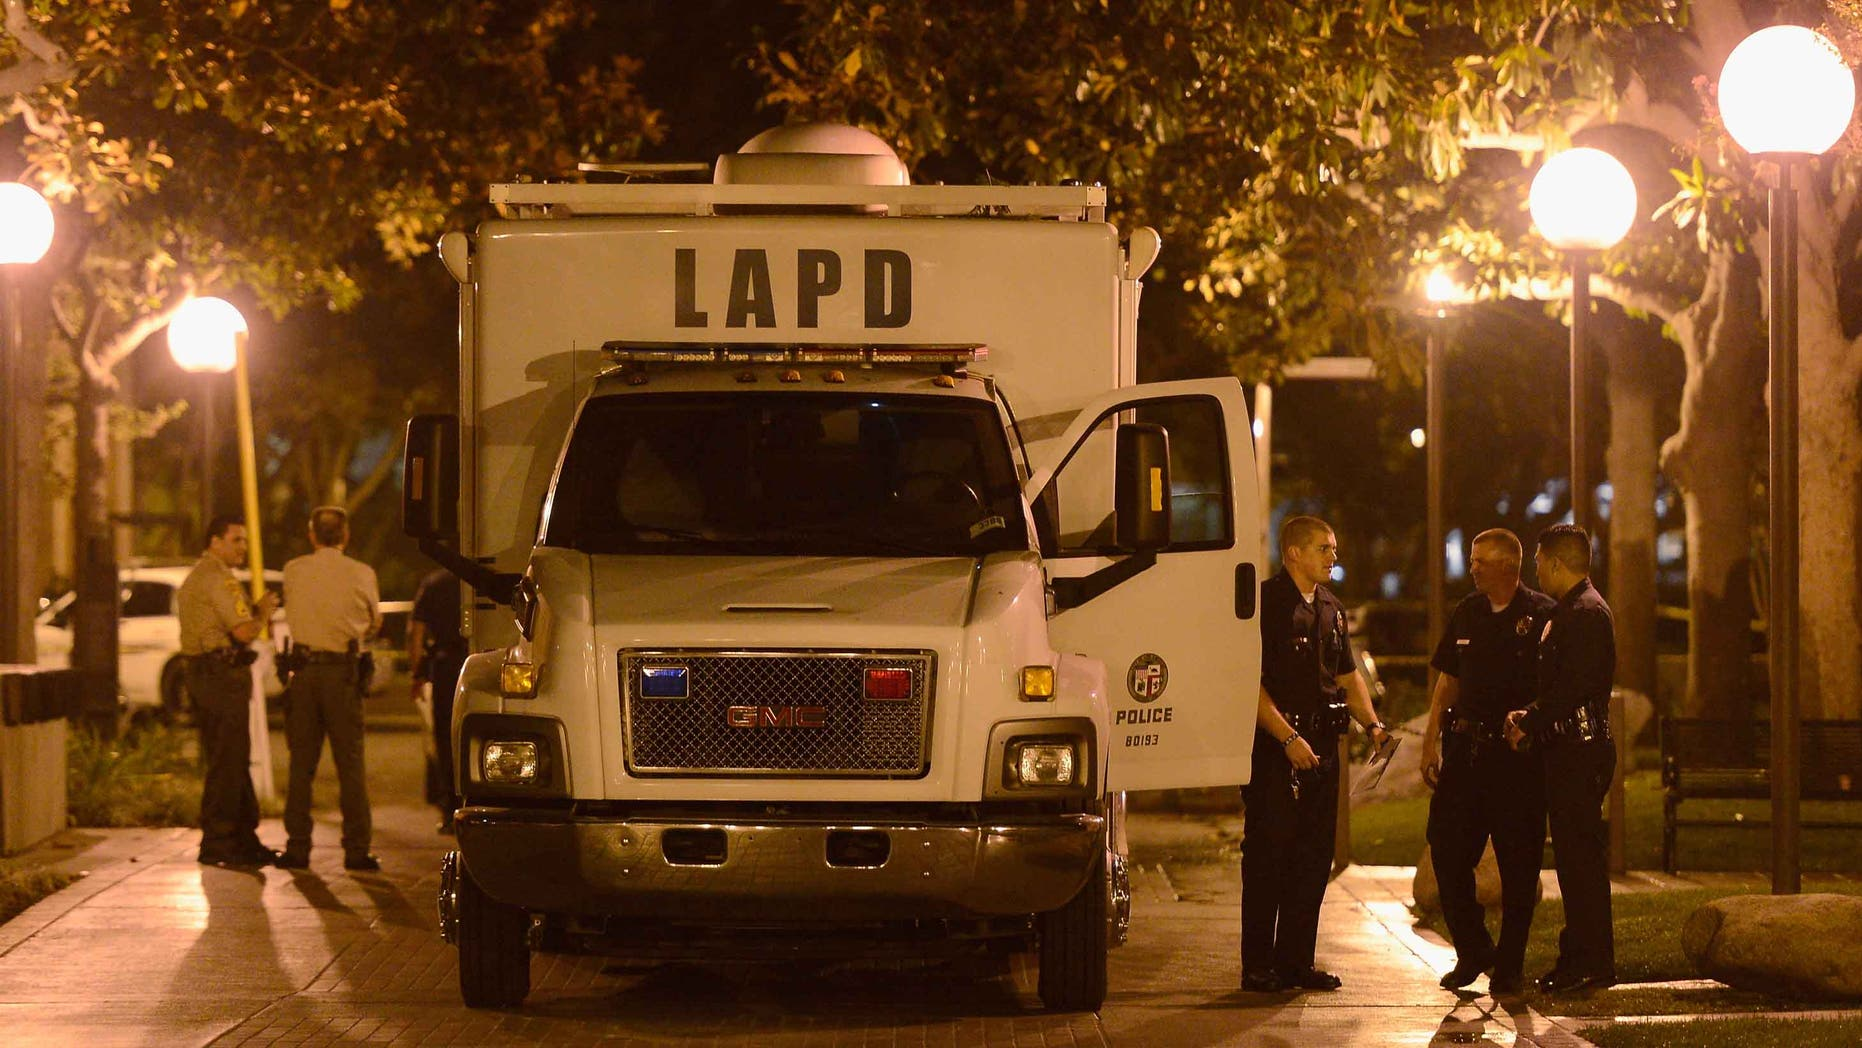 LOS ANGELES, CA - NOVEMBER 01:  Los Angeles Police Department officers and USC Department of Public Safety officer gather at the command post after four people were shot including one in critical condition during a Halloween party at the Tutor Campus Center on November 1, 2012 in Los Angeles, California. The university issued an alert to students and staff that the police were investigating an incident and requested the campus be shut down while encouraging others to stay away from the area to further notice.  (Photo by Kevork Djansezian/Getty Images)